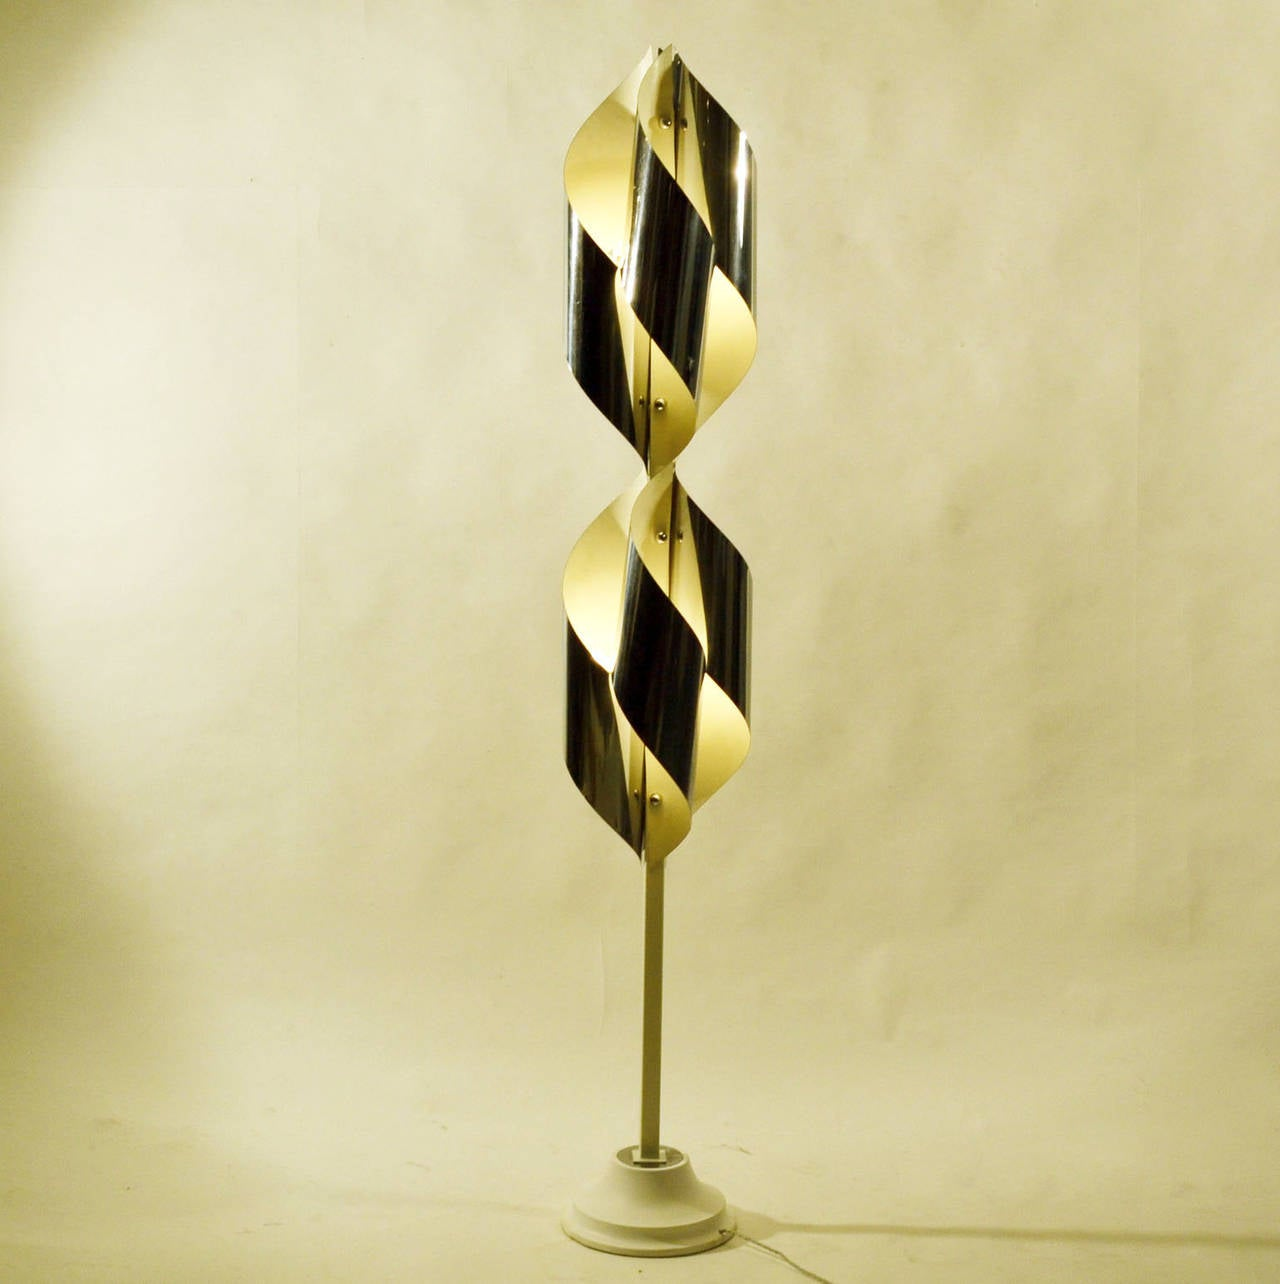 Twisted chromed sheet metal shaped in an array around the center stem. The lamp has eight lights.